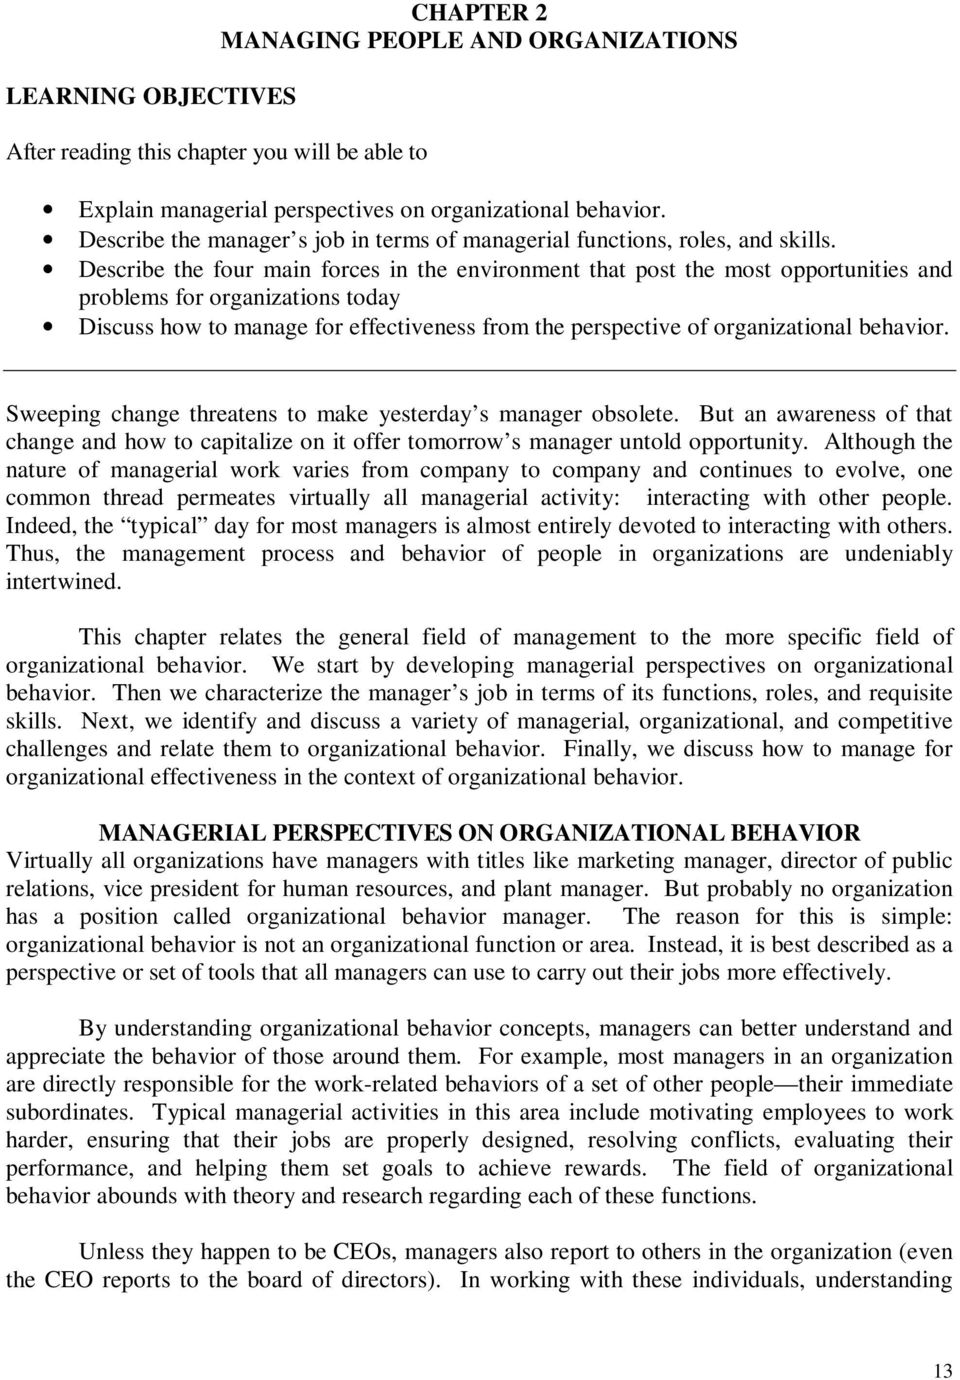 organizational behavior challenges for todays managers essay Introduction: organizational behavior is very challenging and interesting concept of modern era of business it is relevant to the individuals and groups in the organization also it's important for the managers to understand the behaviors of employees and manage it in a proper way.